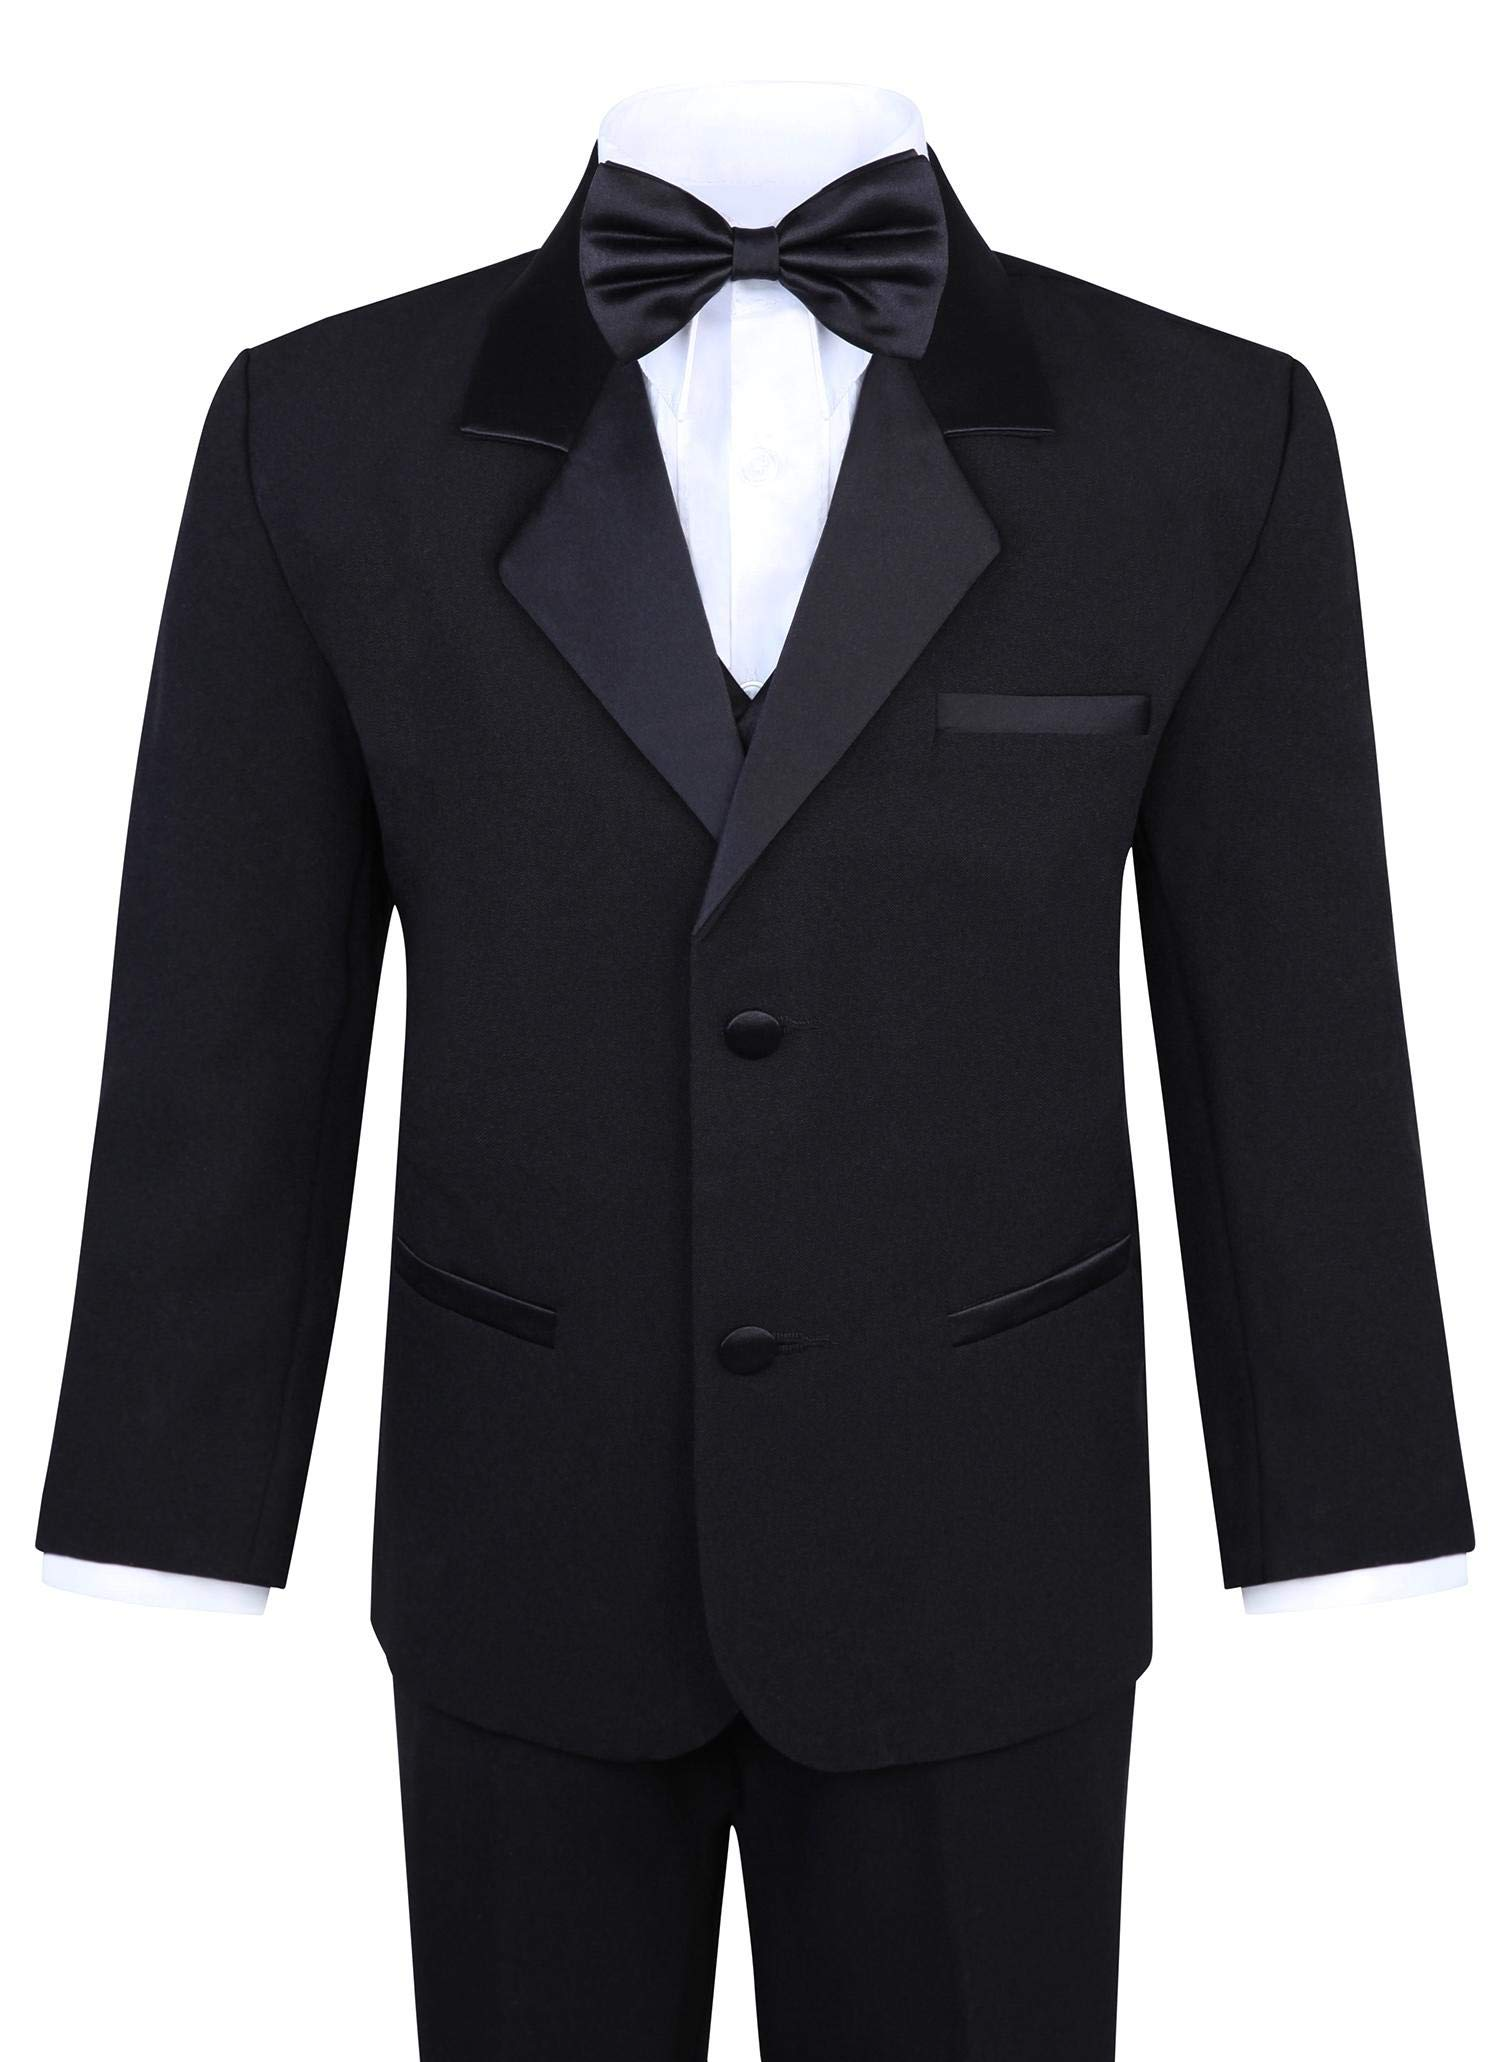 Boy's 5-Piece Tuxedo Set - Black (3T, Black)